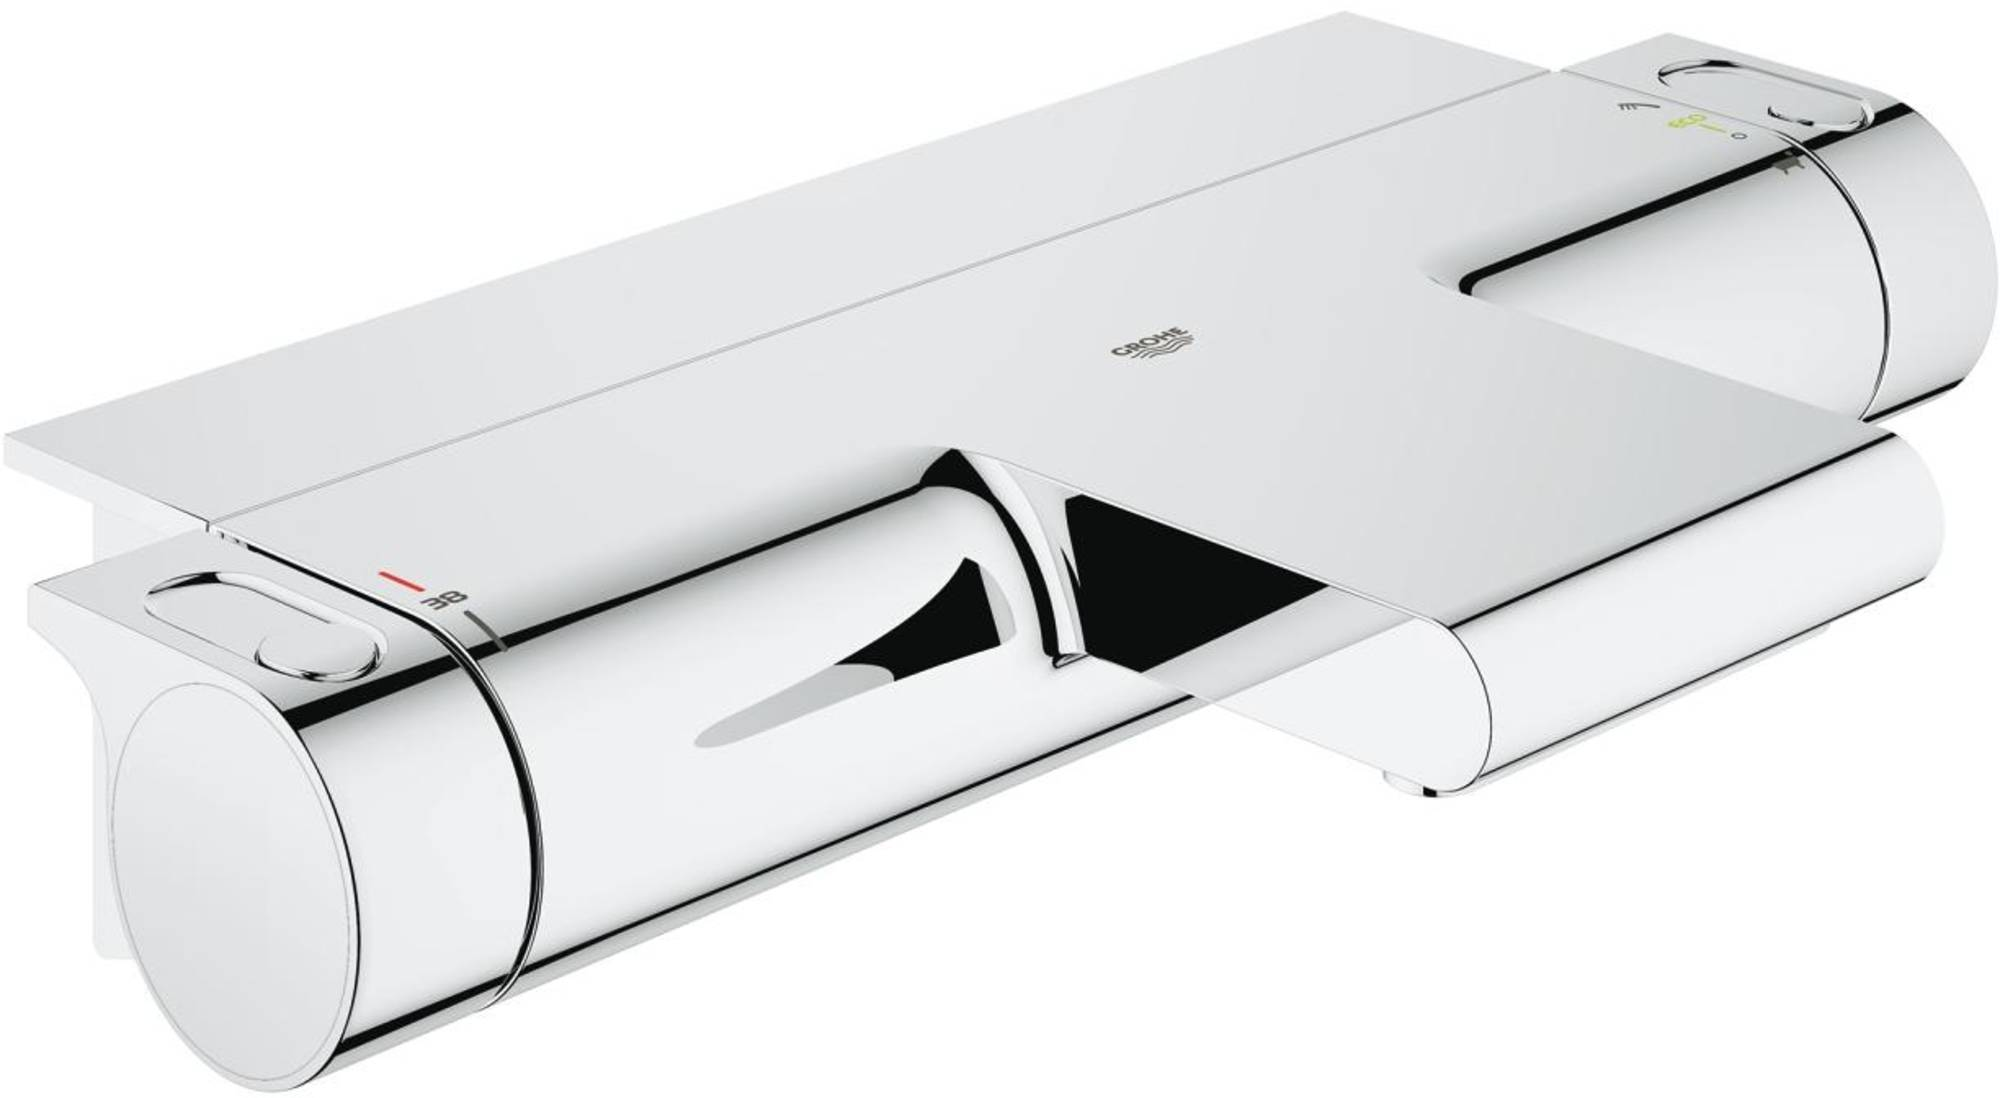 Grohe Grohtherm 2000 New Badthermostaat met planchet Chroom